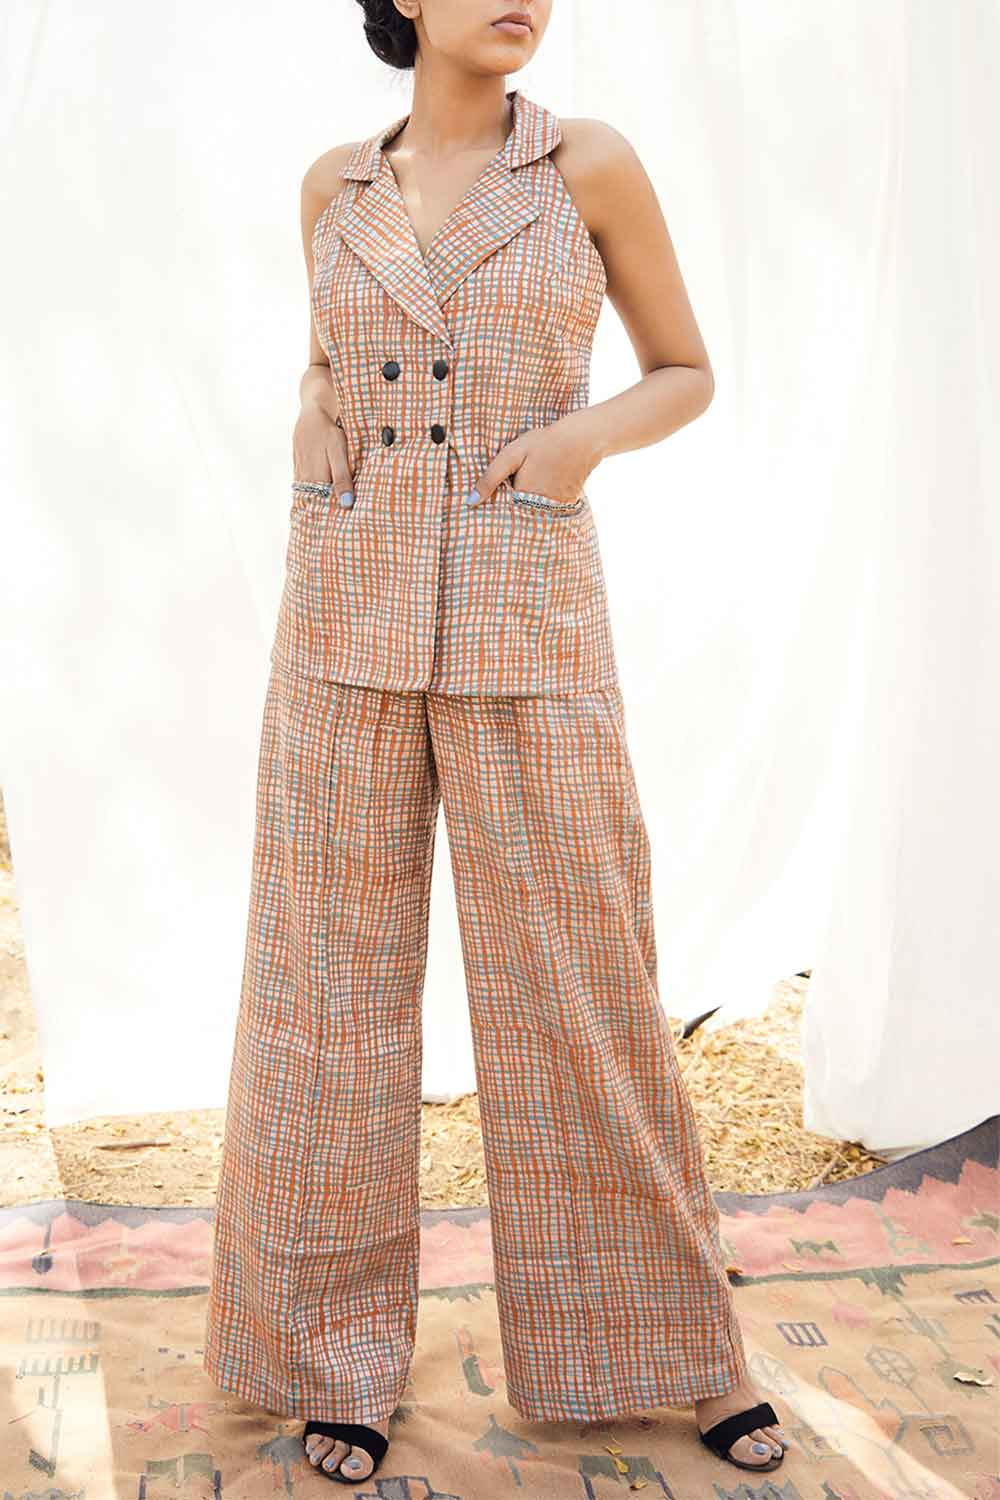 Block Printed Checkered Pant Suit - Riviera Closet